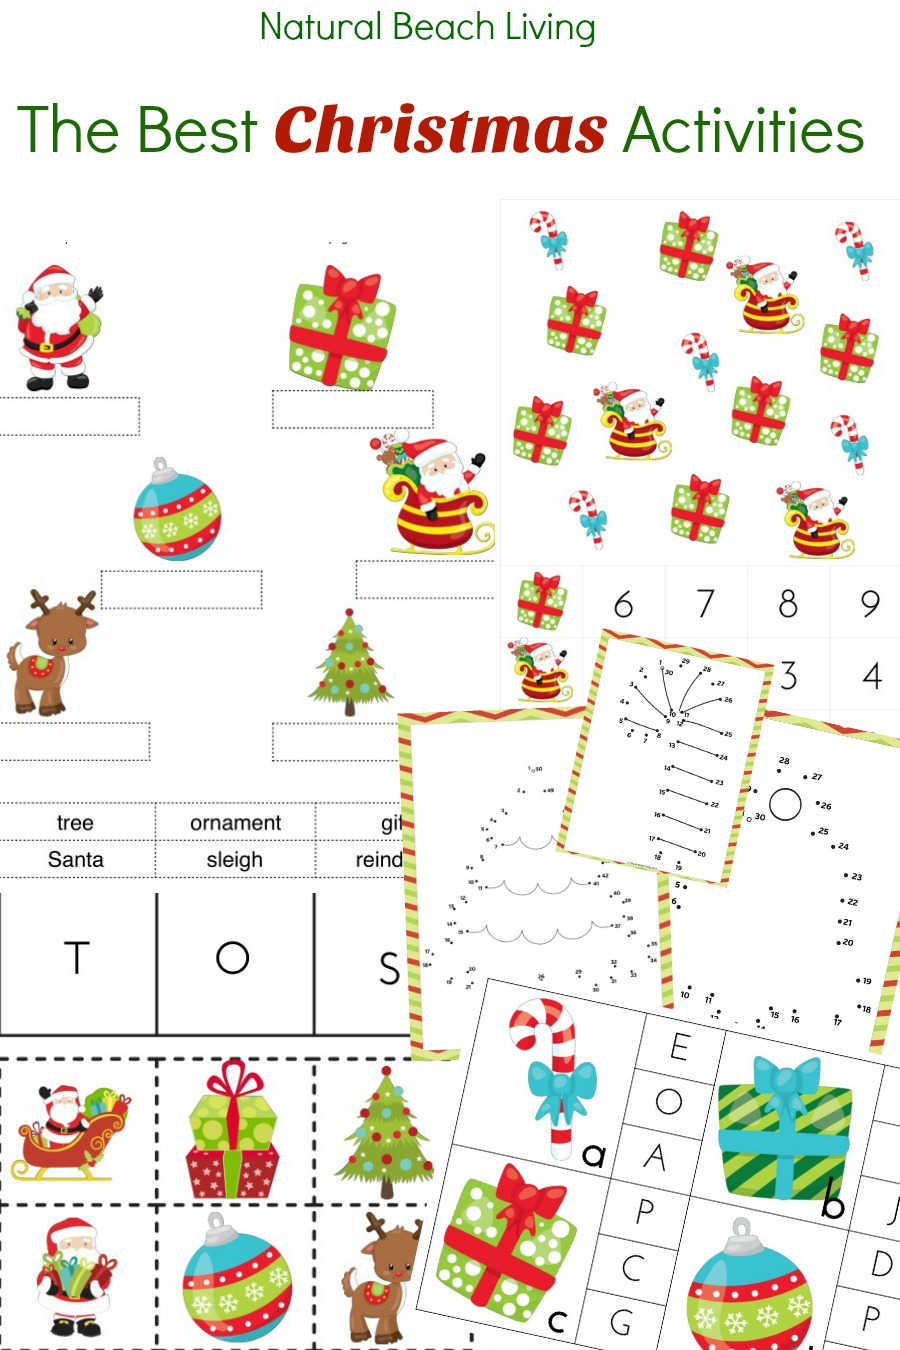 Best Christmas Activities for Kids and Christmas Printables and Activities, Best Christmas Activities printables, Christmas activities for kids, Christmas Math Activities, Christmas Coloring Pages, Christmas Playdough Mats, Winter Scavenger Hunt, Christmas Reading Challenge and More